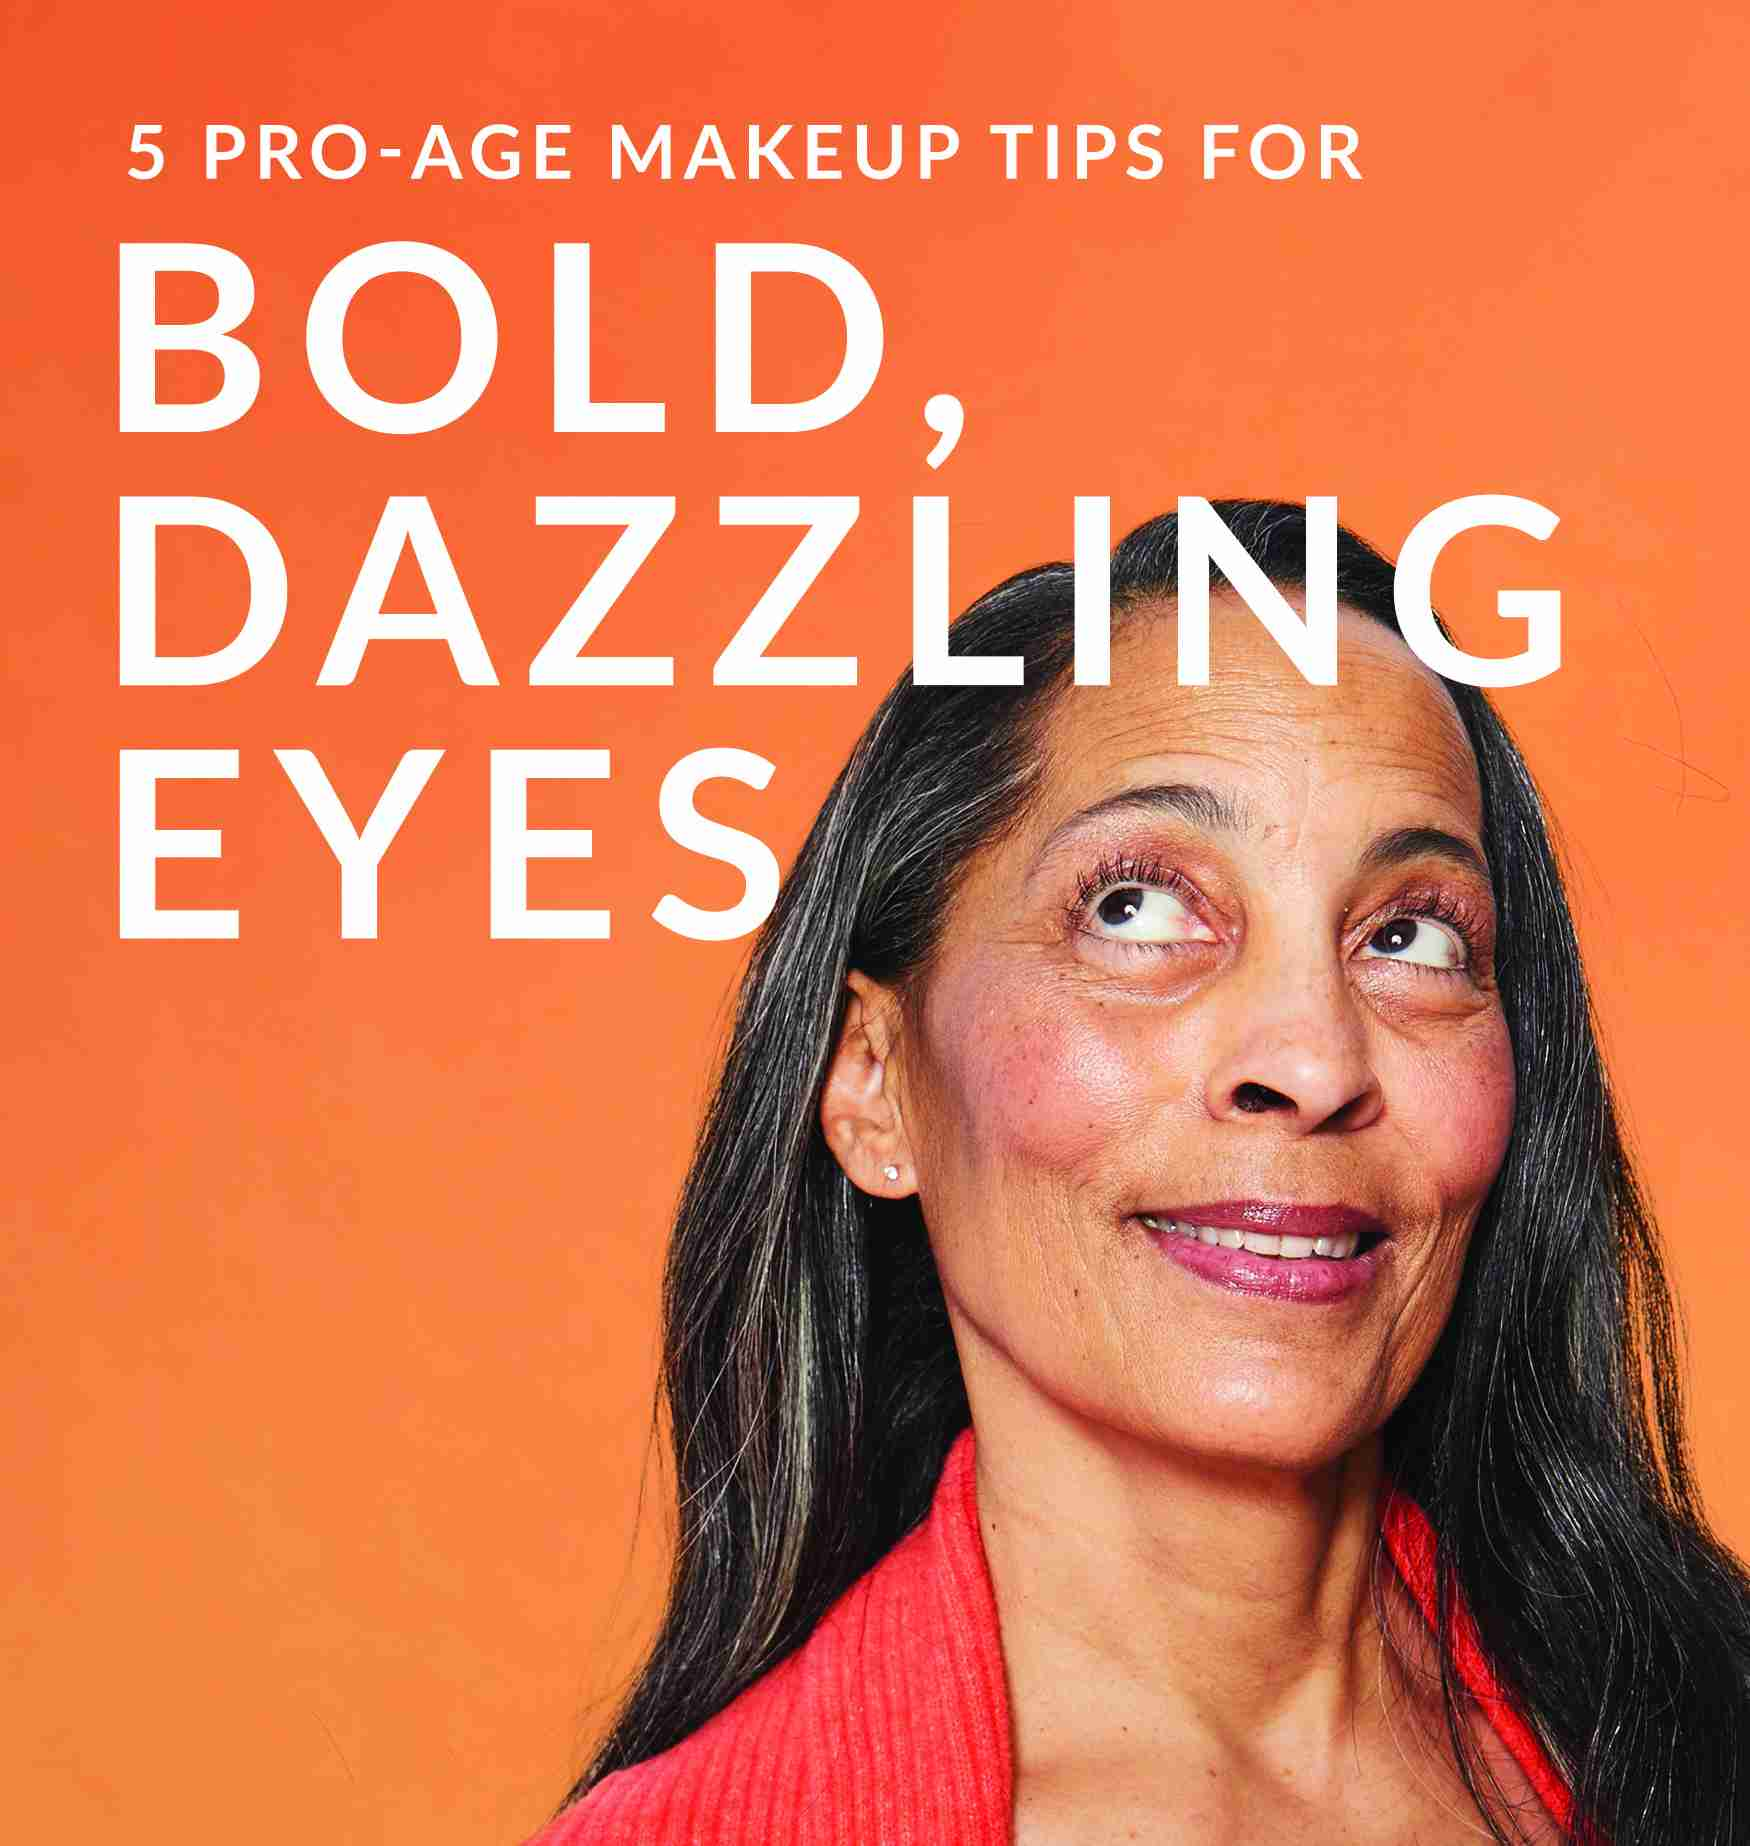 5 Pro-age Makeup Tips for Bold, Dazzling Eyes